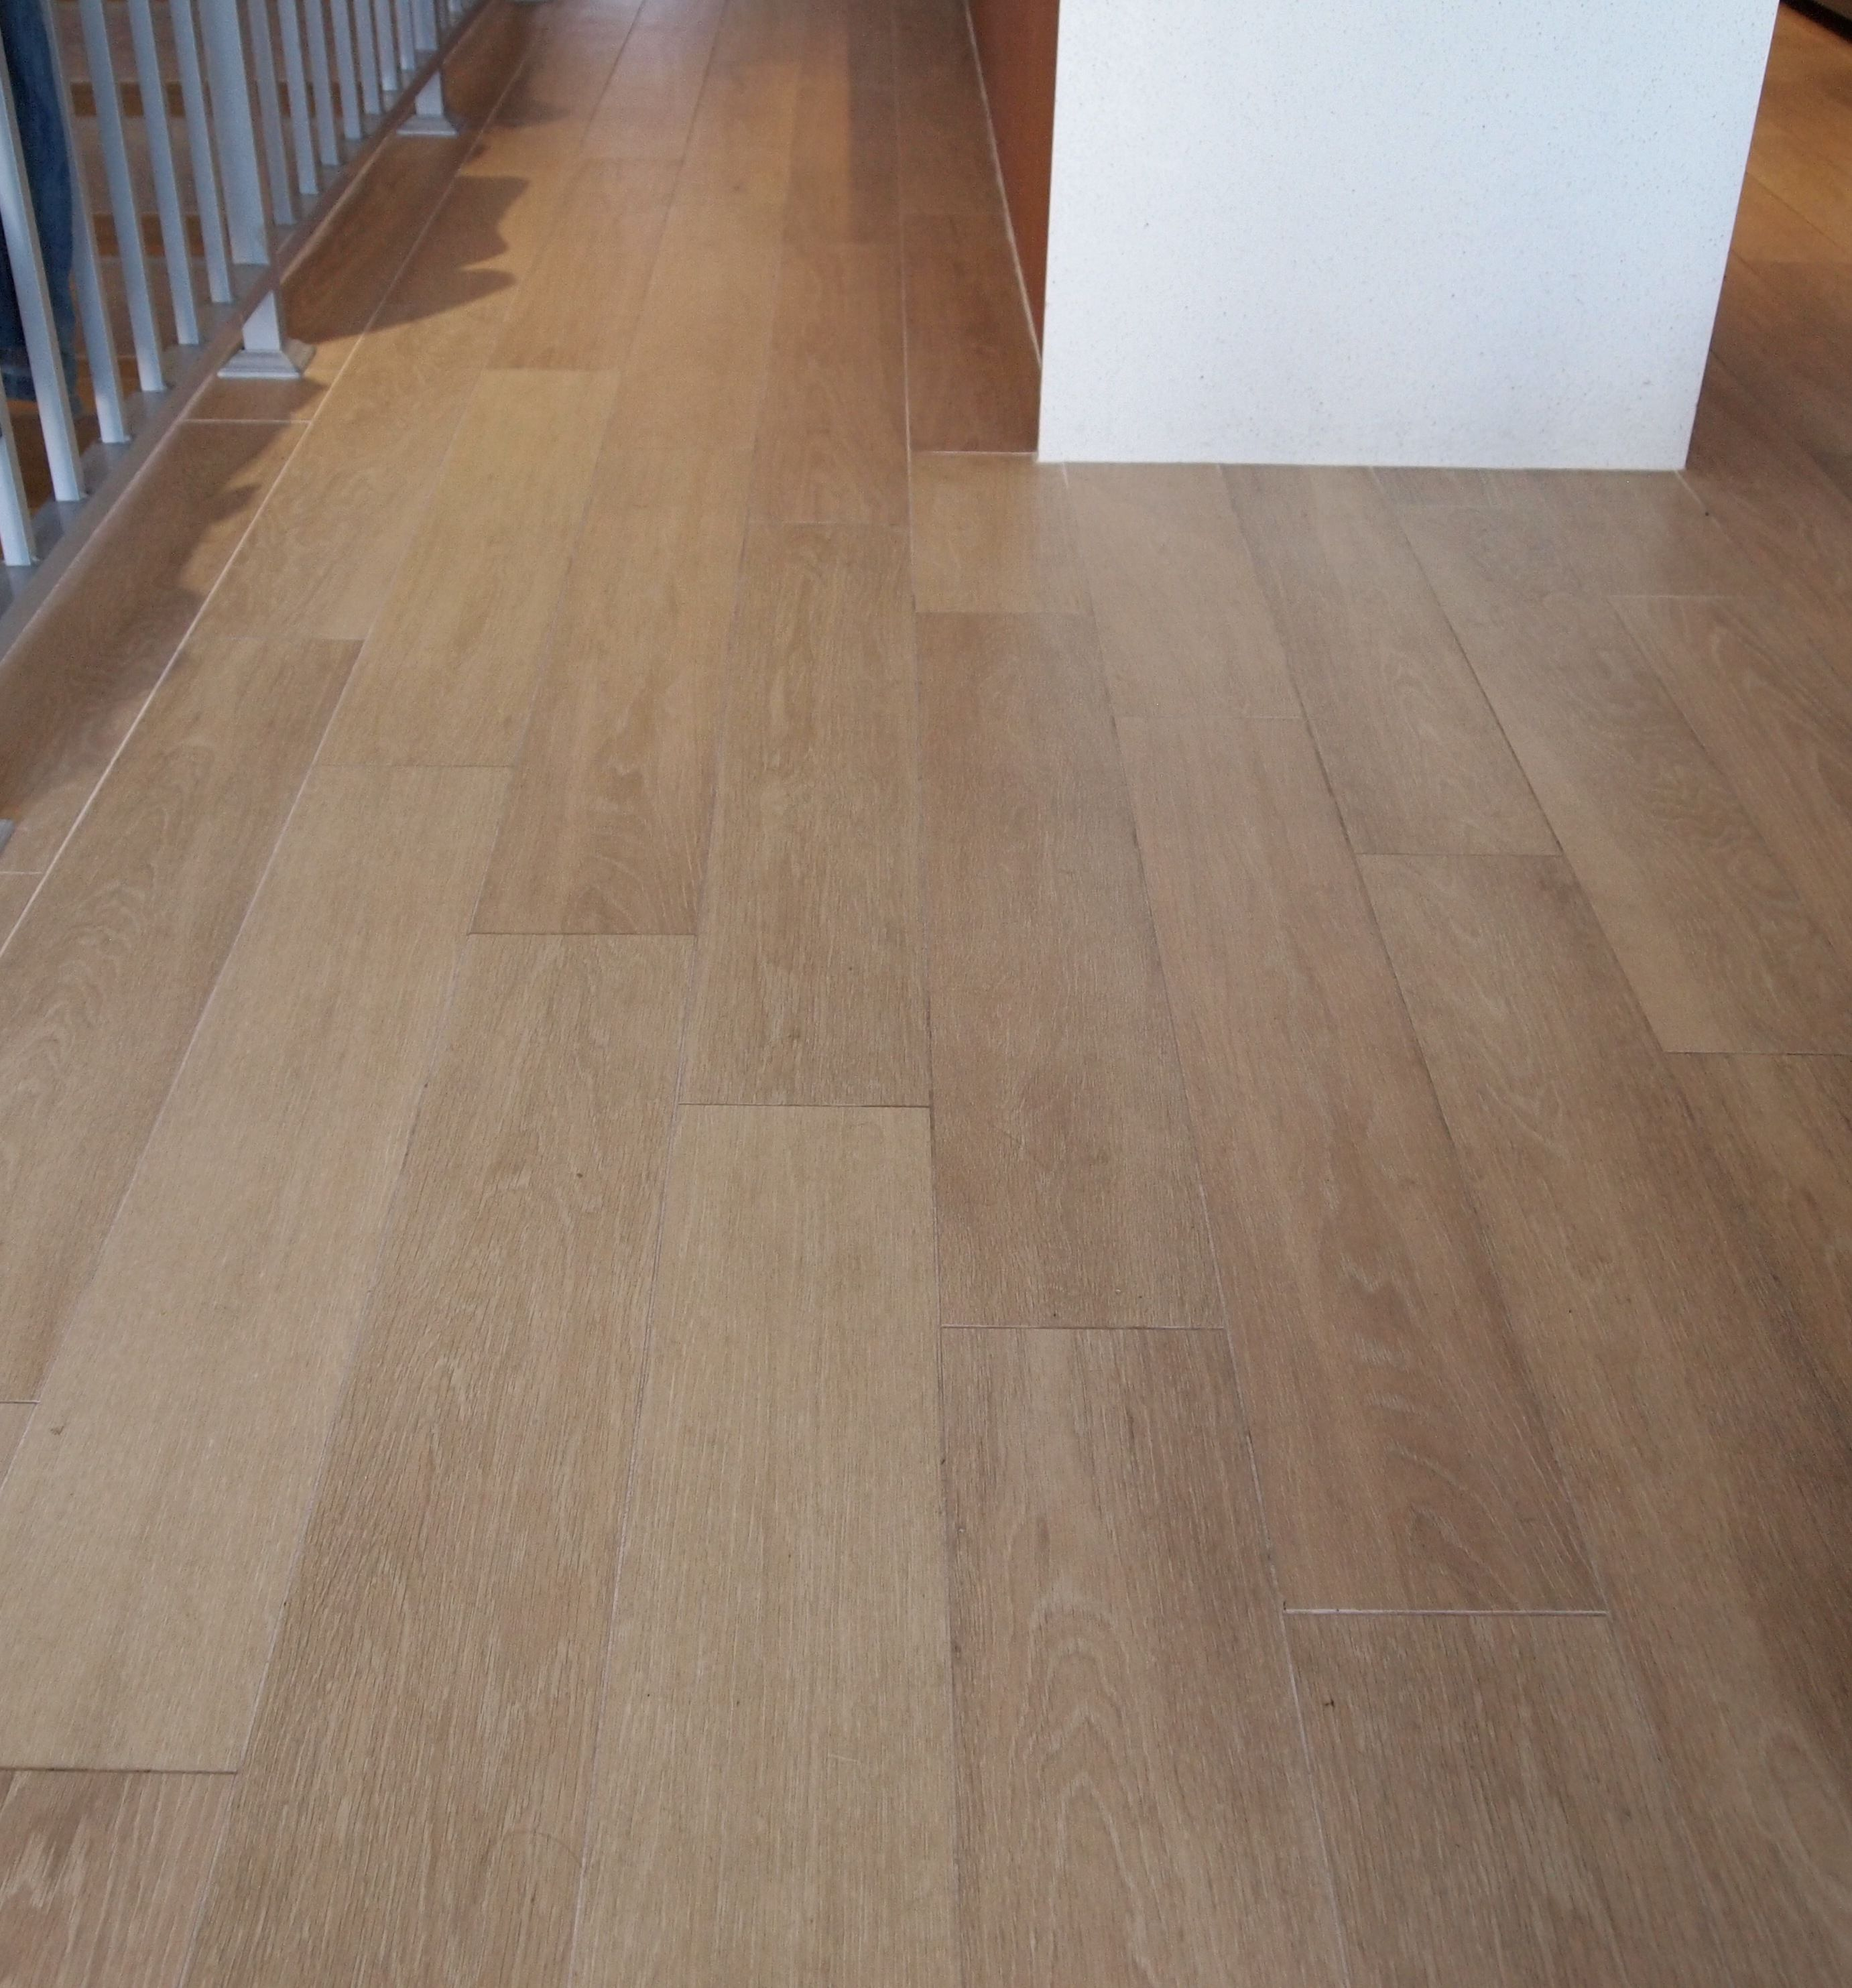 Kitchen Floor Tiles Sydney Amazing Range Of Spanish Oak Timber Look Floor Tiles On Display At